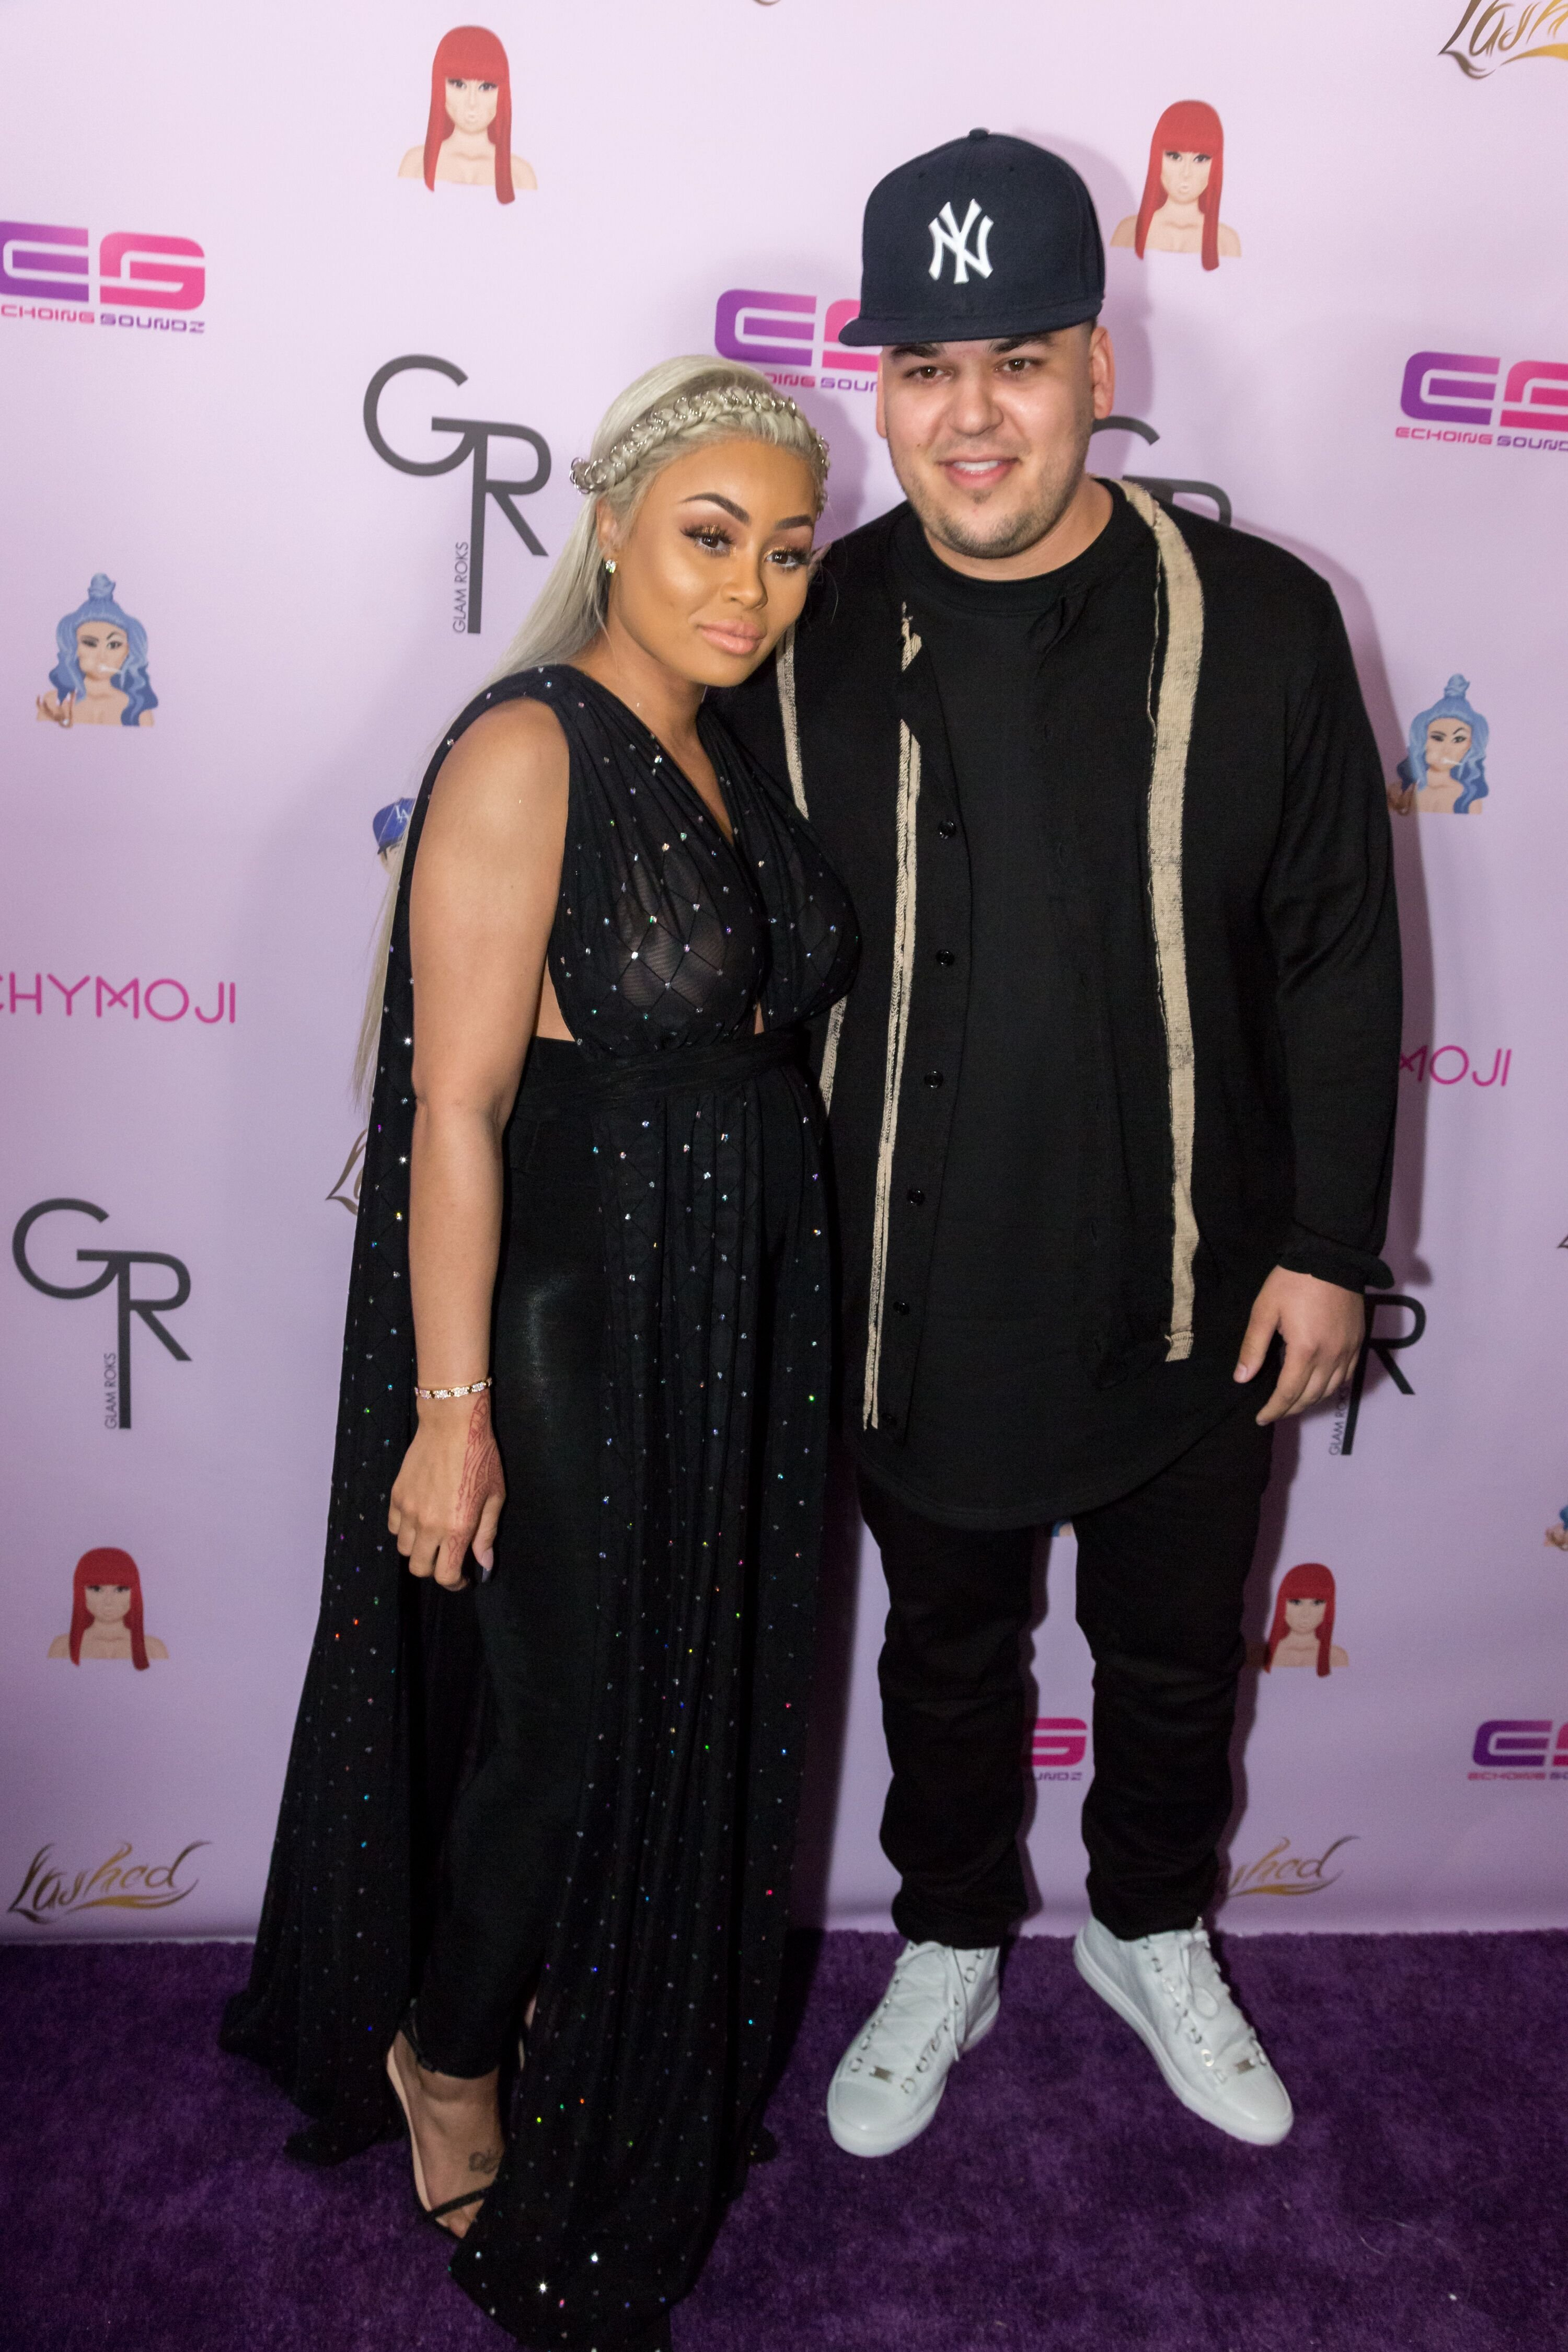 Rob Kardashian and Blac Chyna at a public guesting | Source: Getty Images/GlobalImagesUkraine